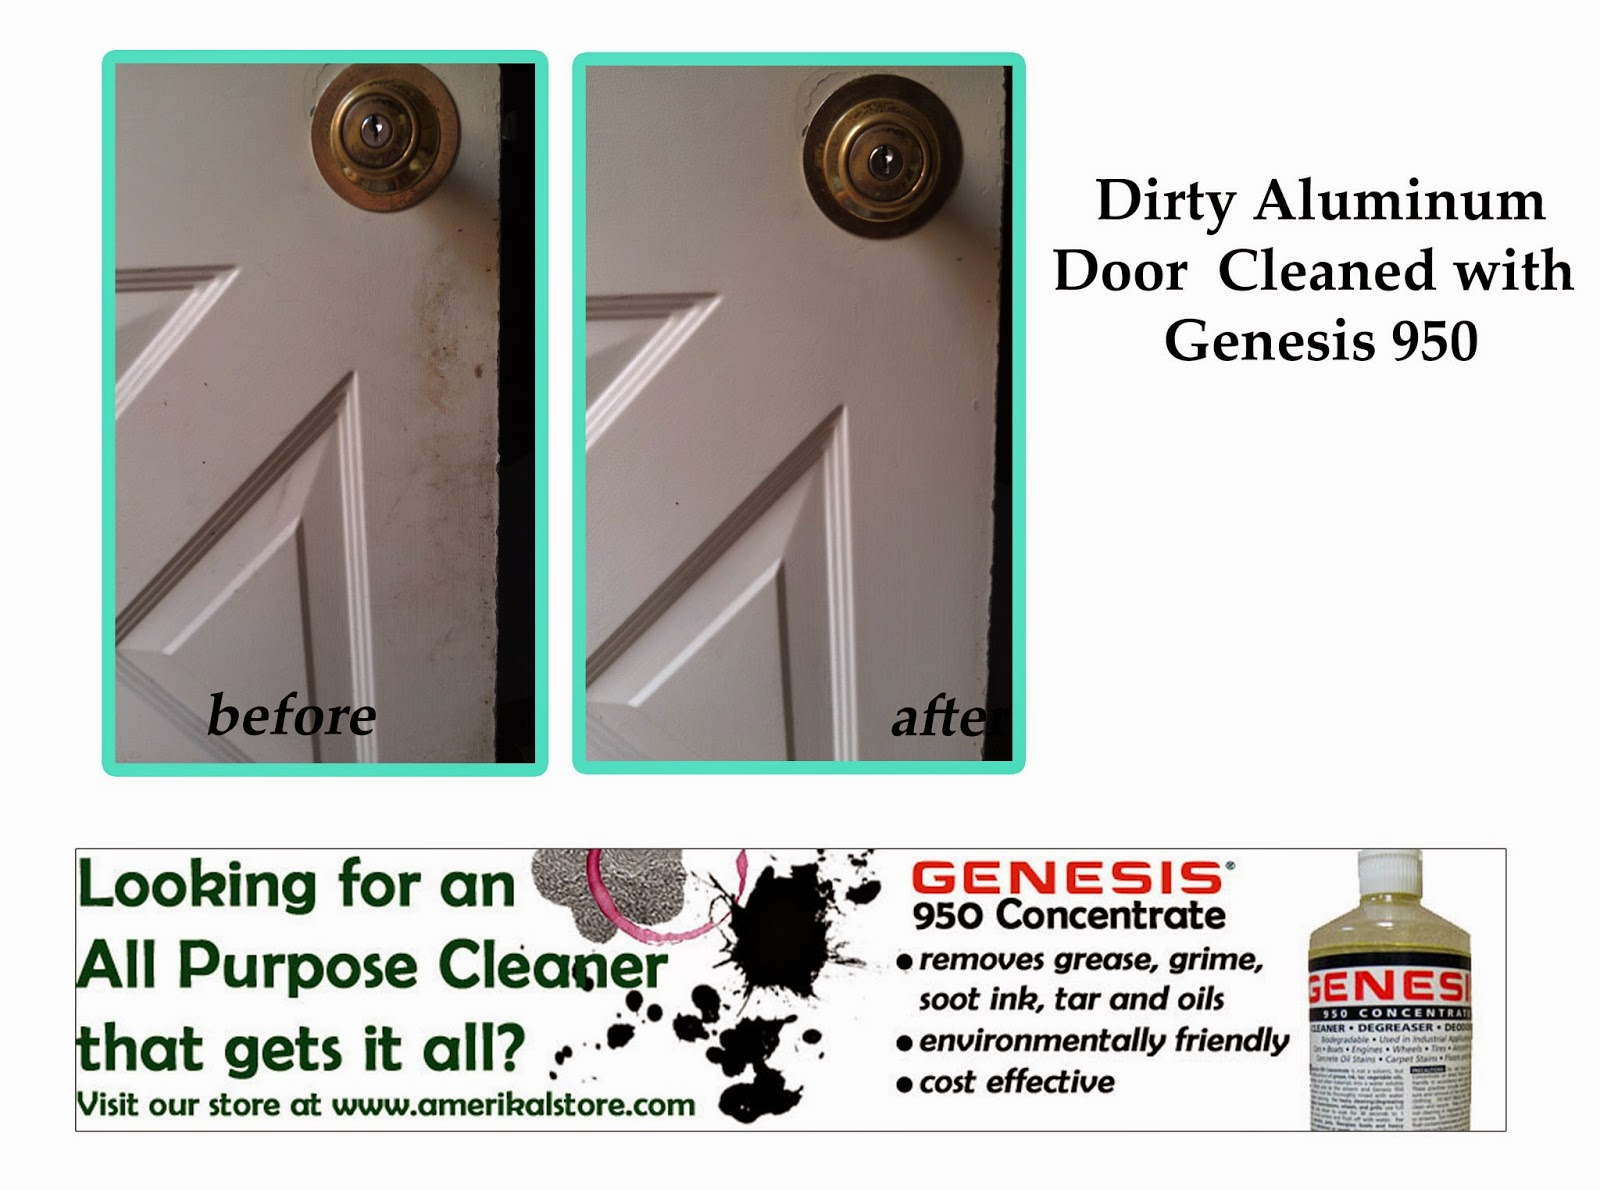 Clean Aluminum Doors & Siding